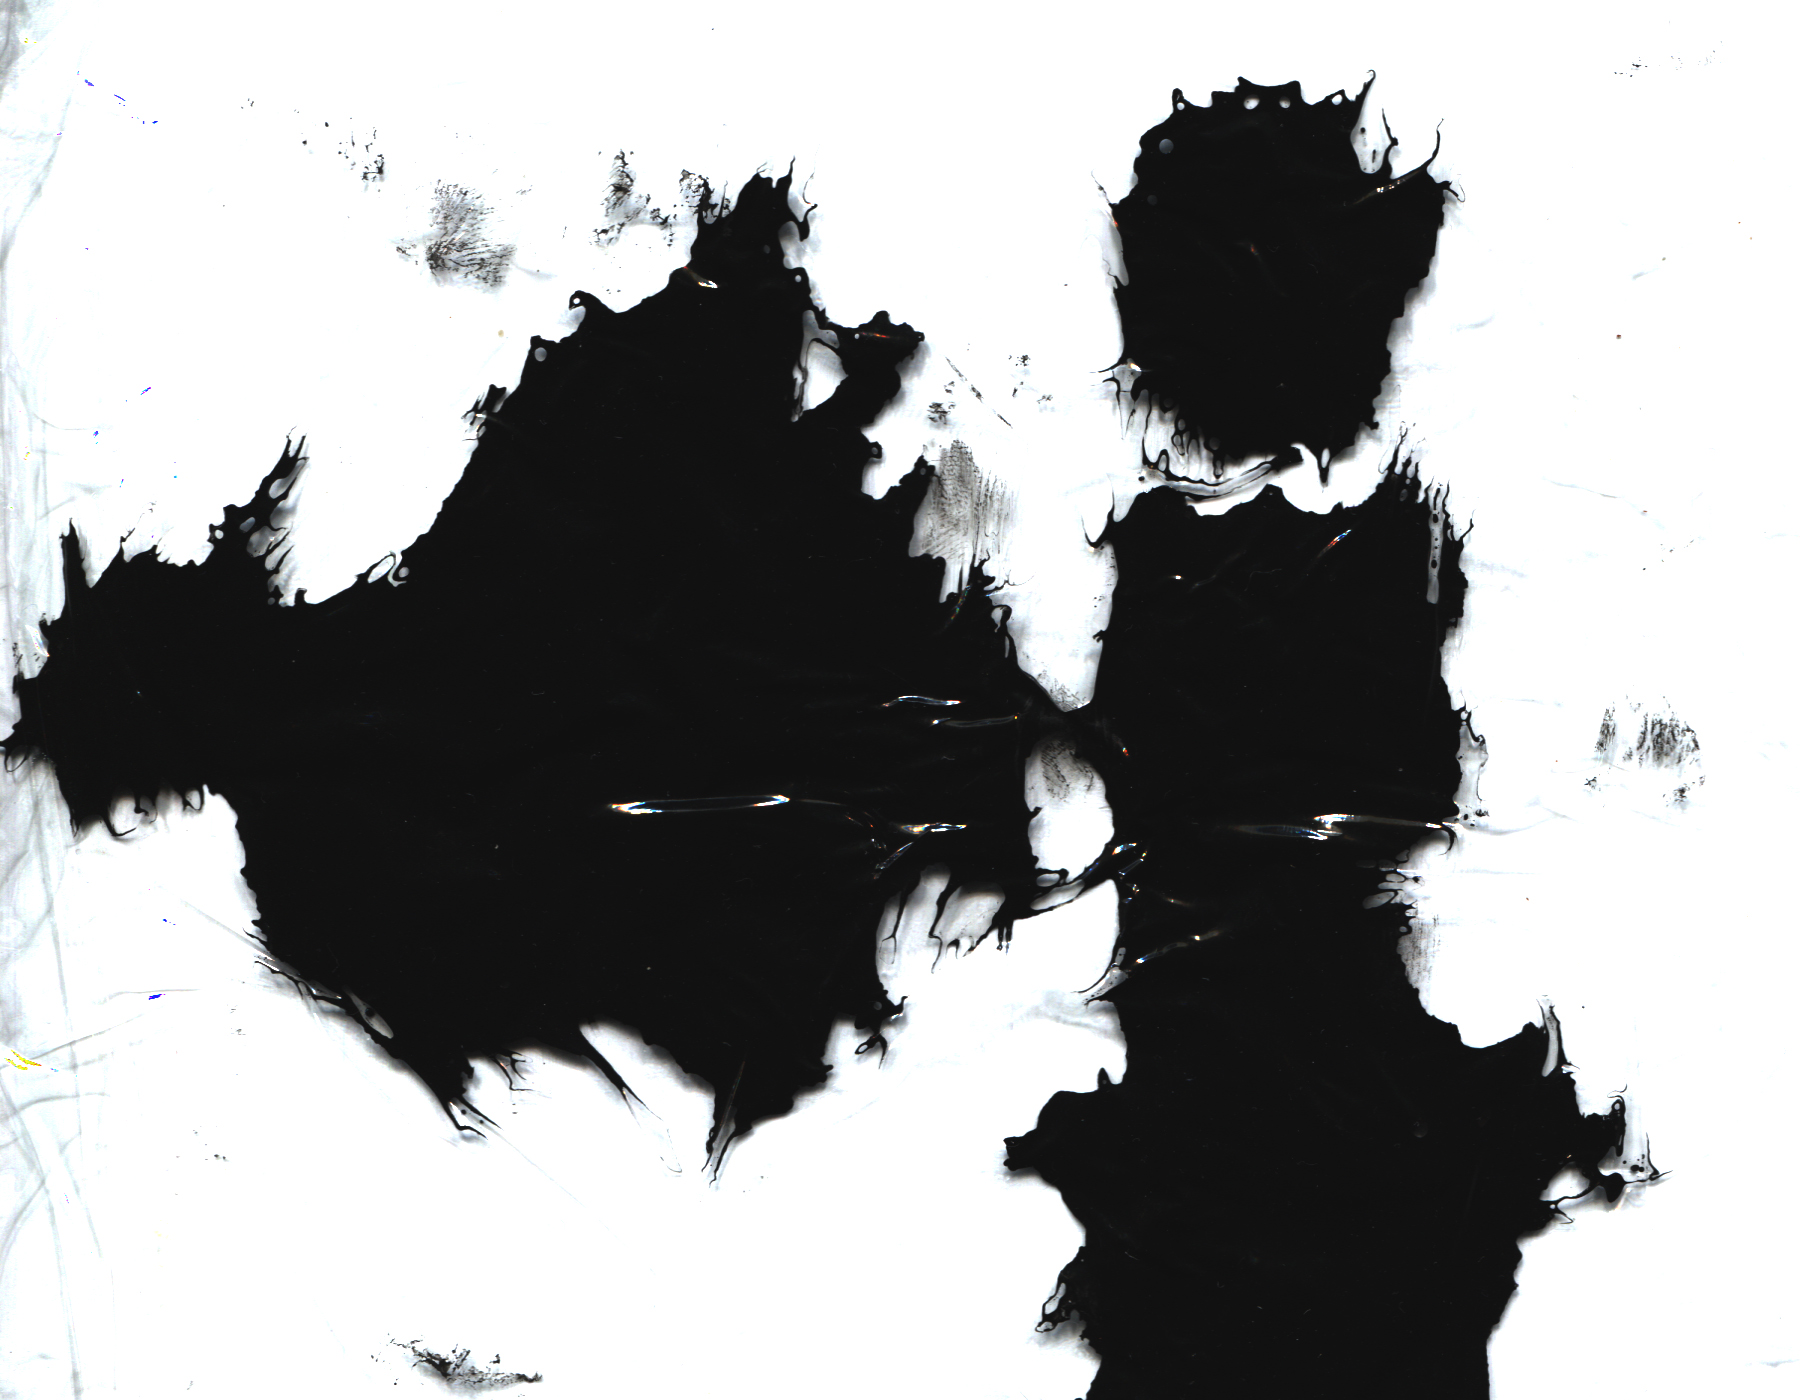 six experimental ink textures